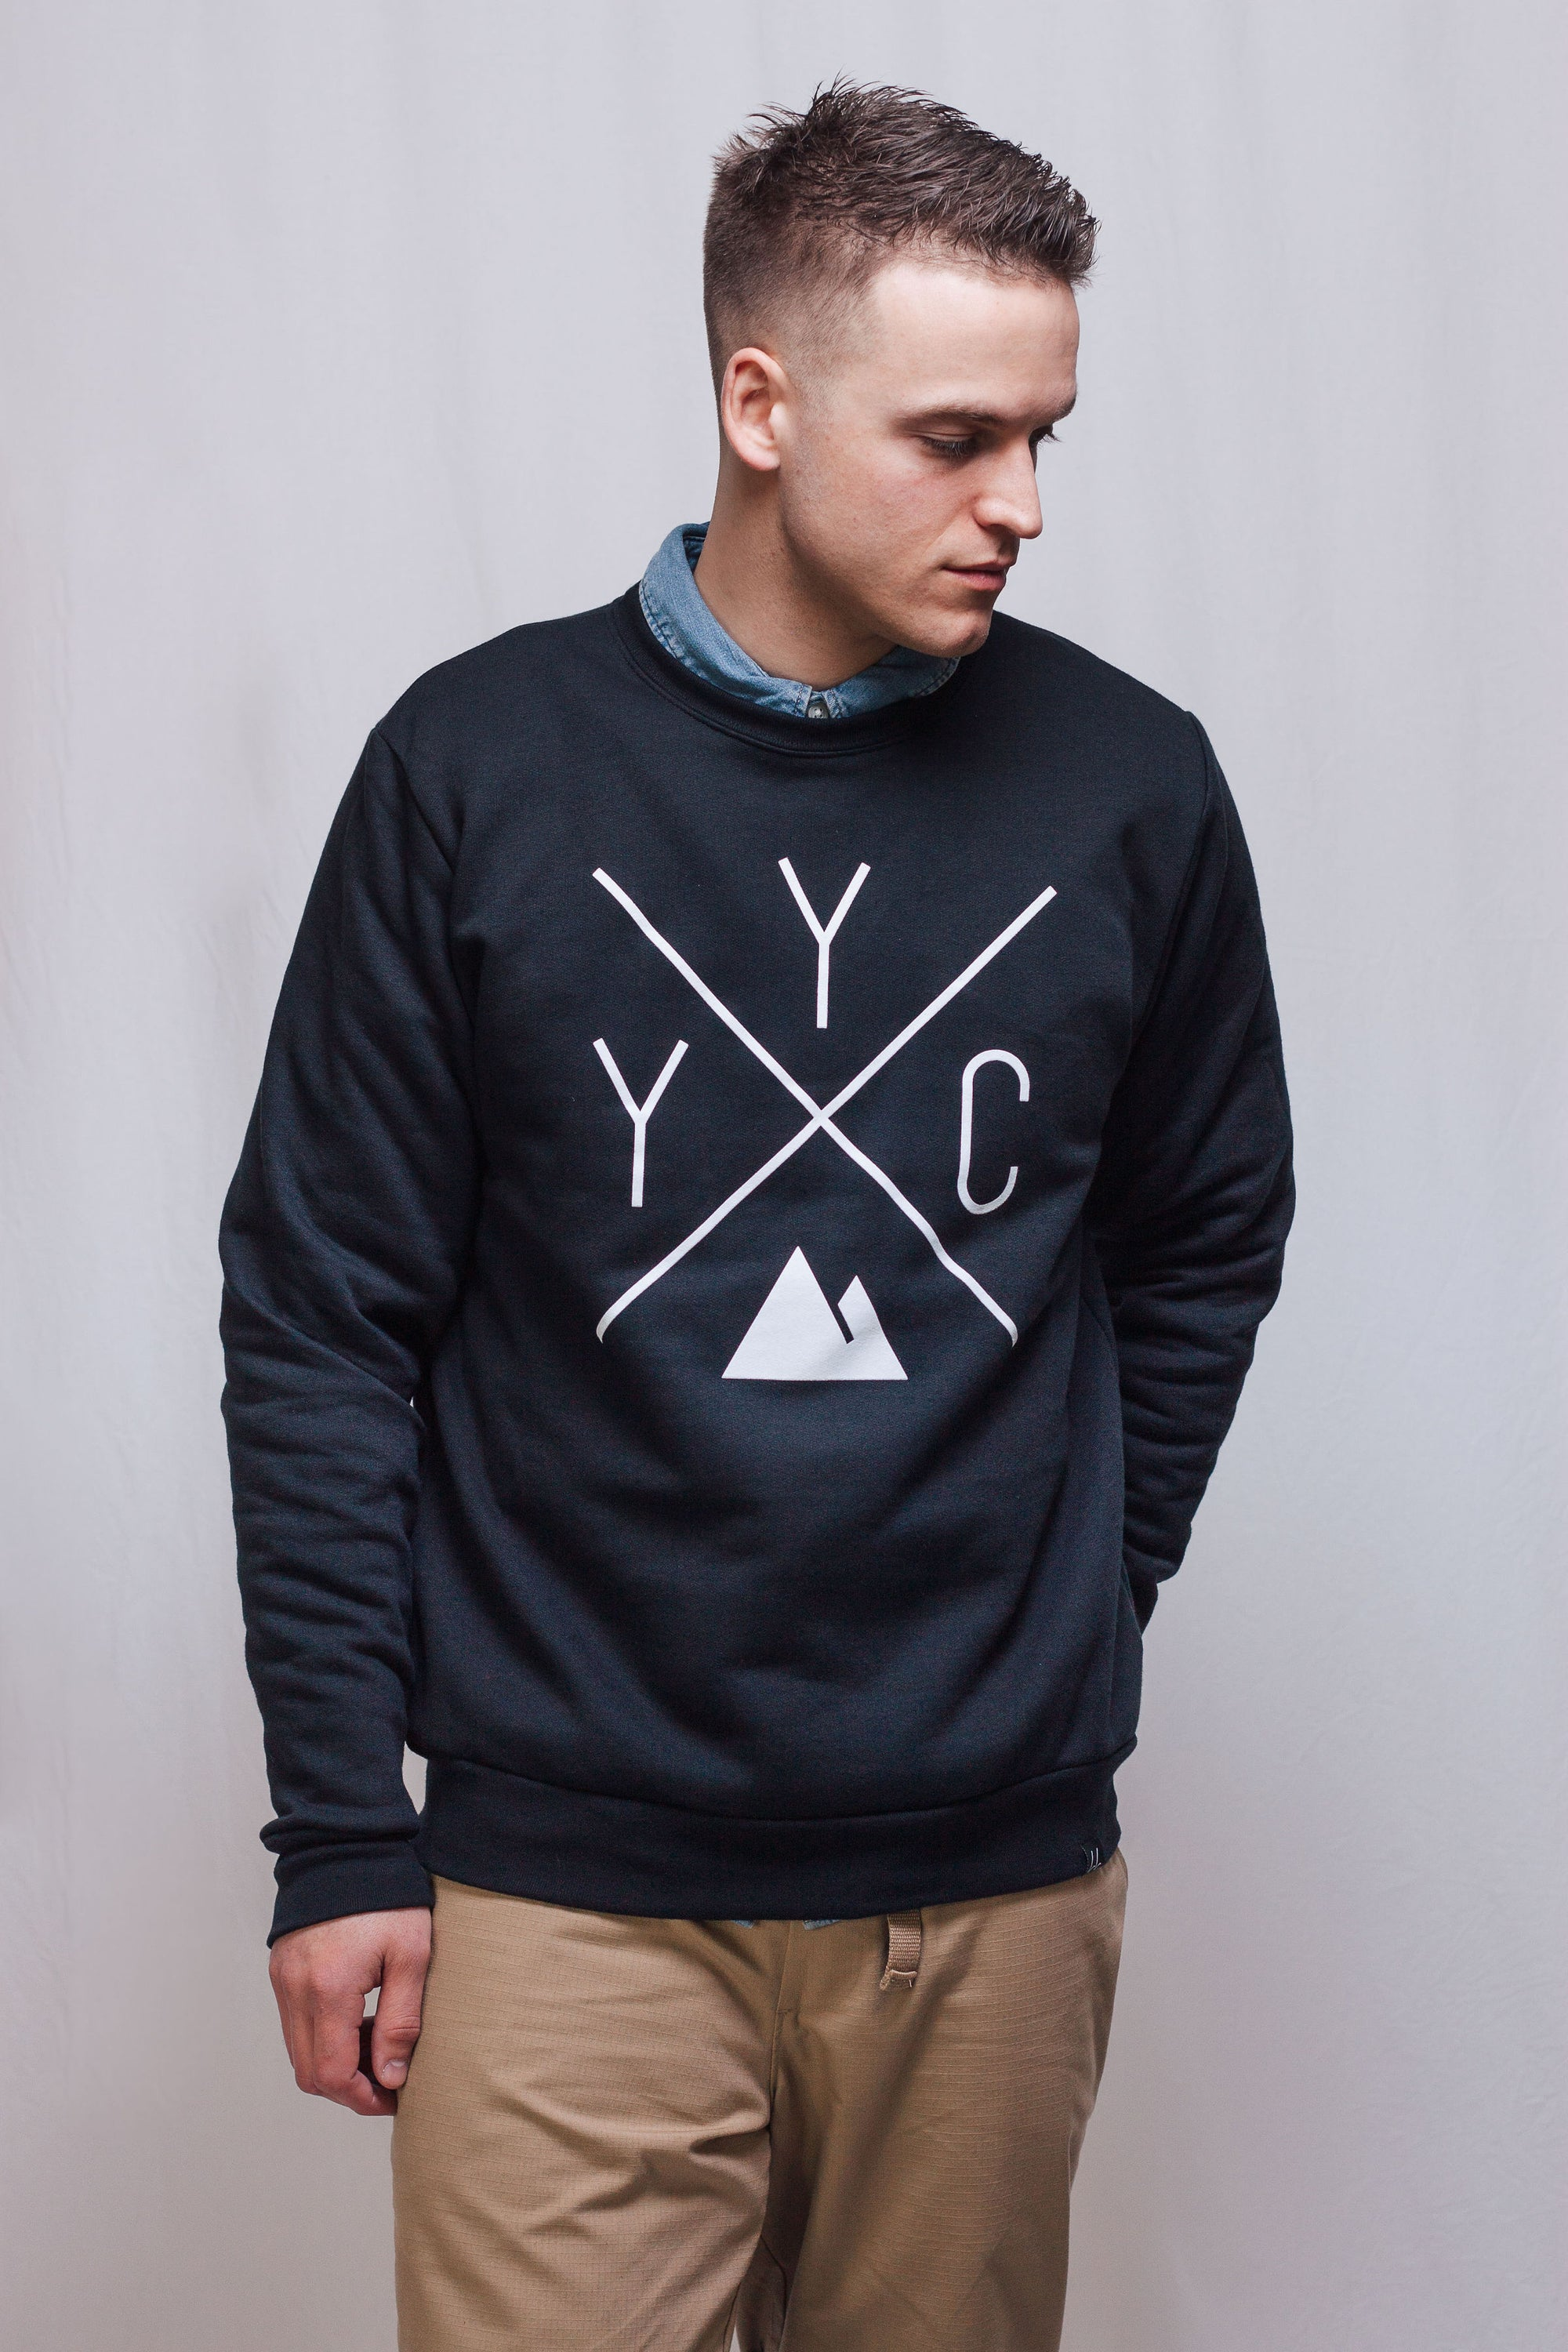 Made in Canada - YYC Crewneck Sweatshirt - X Design - Unisex - Black - Local Laundry